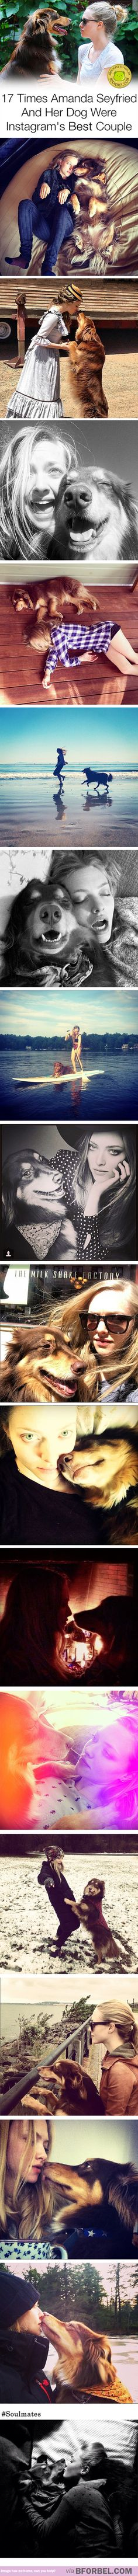 17 Times Amanda Seyfried And Her Dog Were Instagram's Best Couple…                                                                                                                                                                                 More